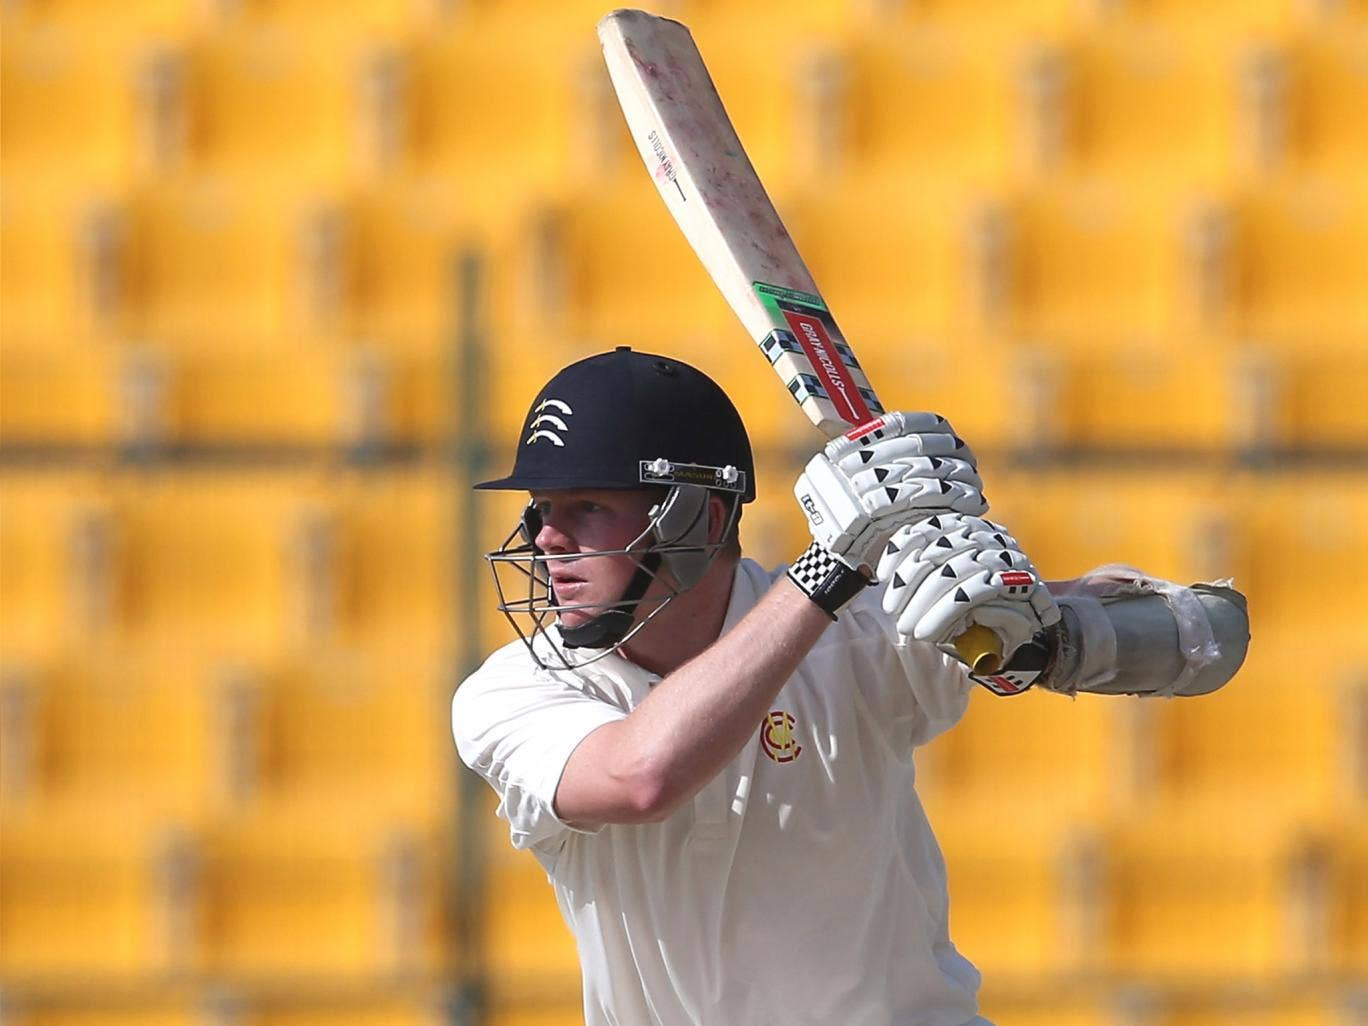 Sam Robson's batting style has been likened to that of Michael Atherton